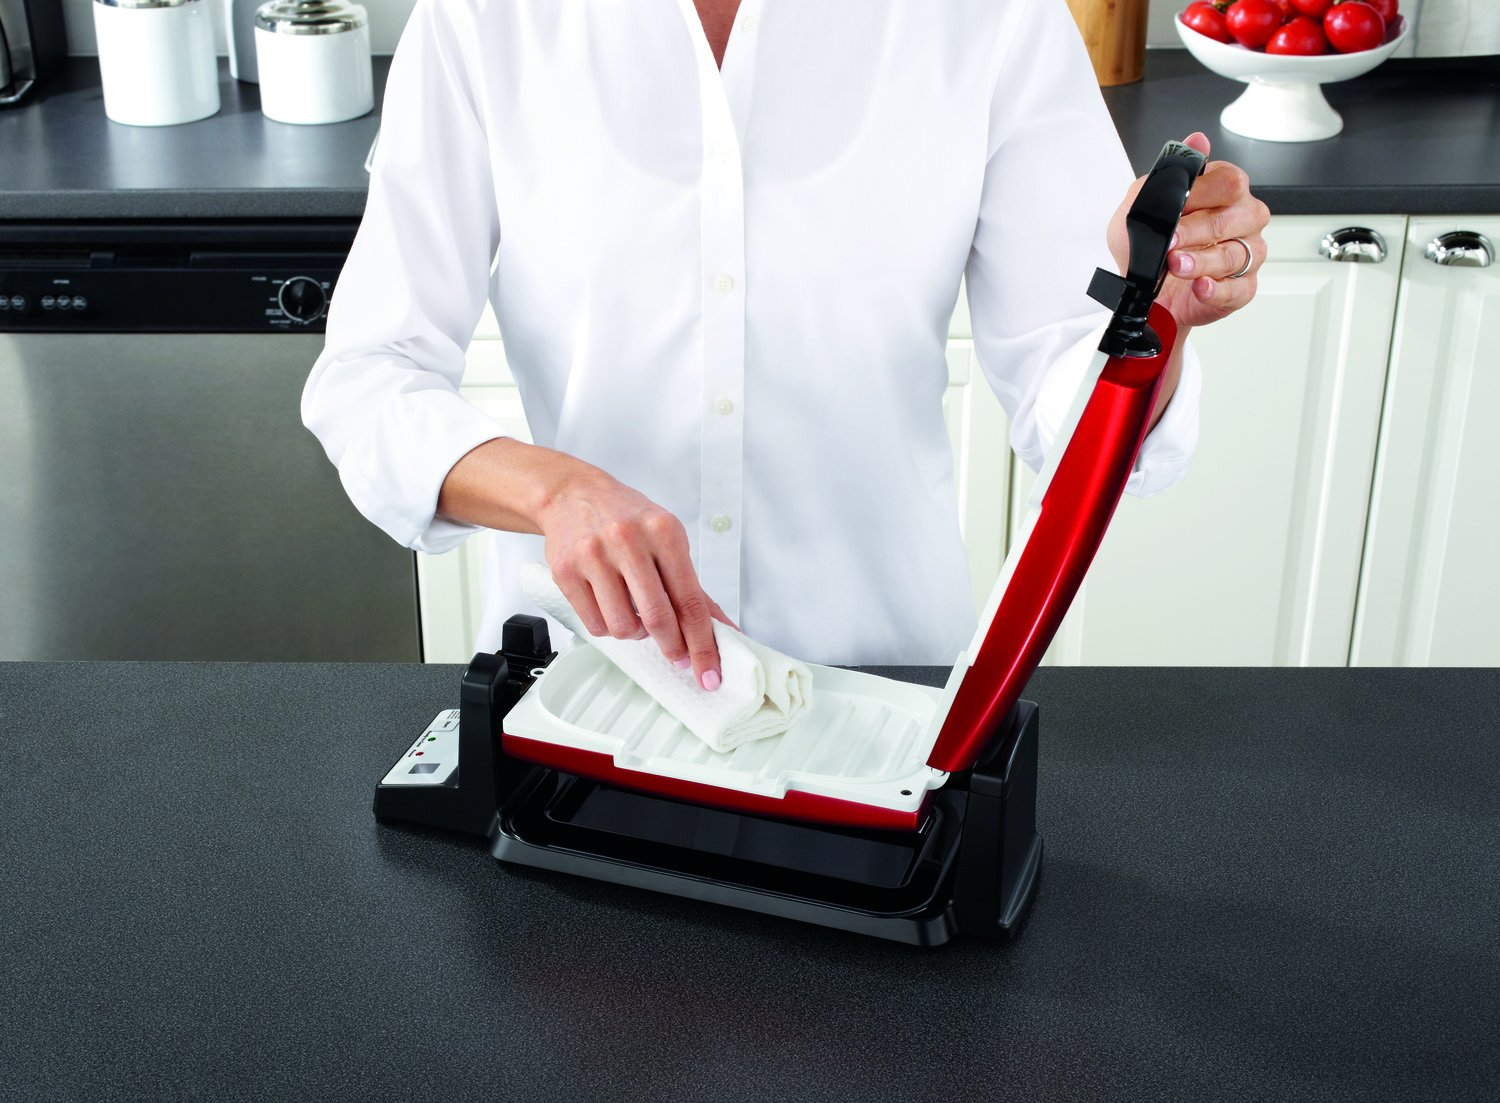 Oster 7-Minute Grill with DuraCeramic Coating and Digital Timer, Red/White, CKSTCG22R-ECO by Oster (Image #5)